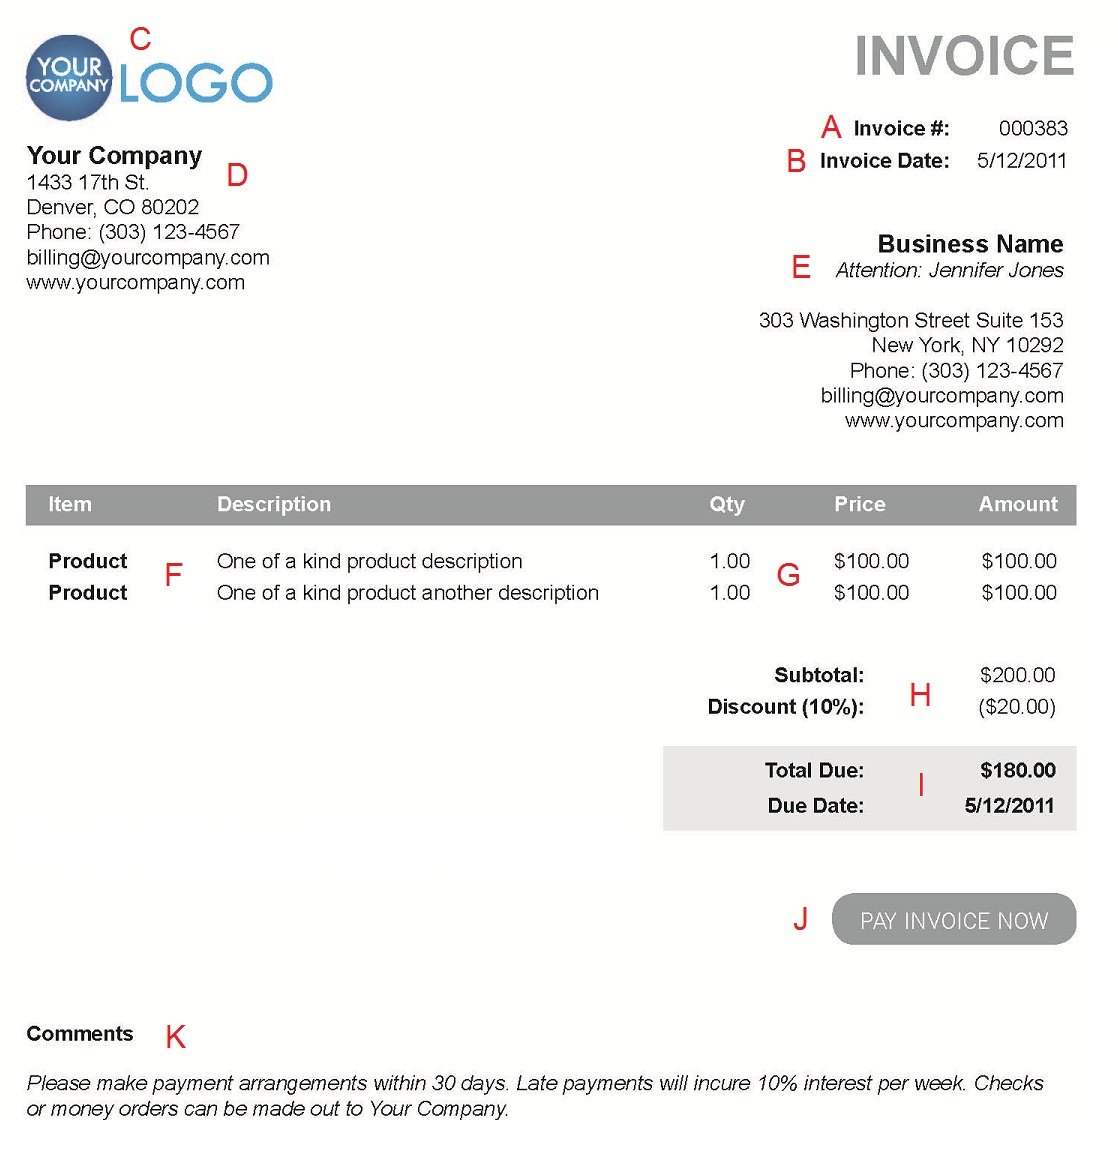 Opposenewapstandardsus  Marvellous The  Different Sections Of An Electronic Payment Invoice With Exquisite A  With Delightful Catering Invoice Sample Also Invoice Xls In Addition Business Invoice Templates And Reconciling Invoices As Well As Invoice Programs For Small Business Free Additionally Print An Invoice From Paysimplecom With Opposenewapstandardsus  Exquisite The  Different Sections Of An Electronic Payment Invoice With Delightful A  And Marvellous Catering Invoice Sample Also Invoice Xls In Addition Business Invoice Templates From Paysimplecom